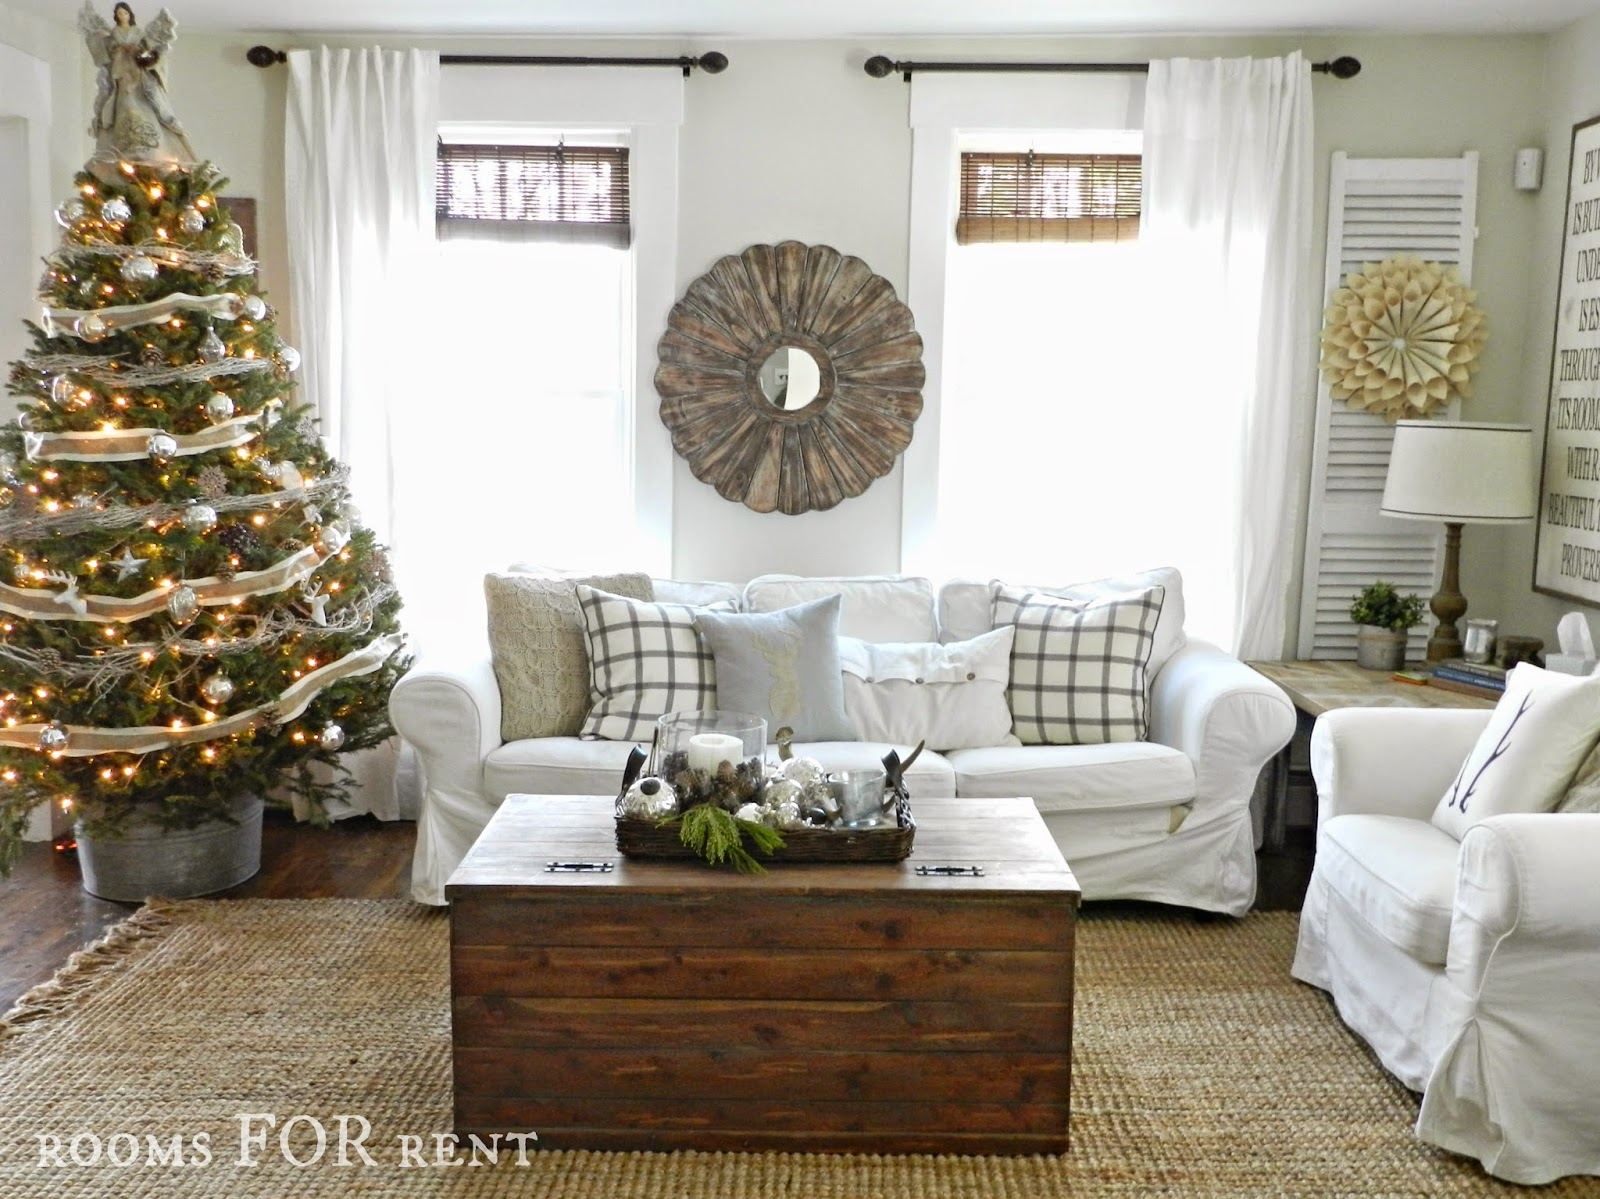 Stunning Christmas Country Home Tour 11